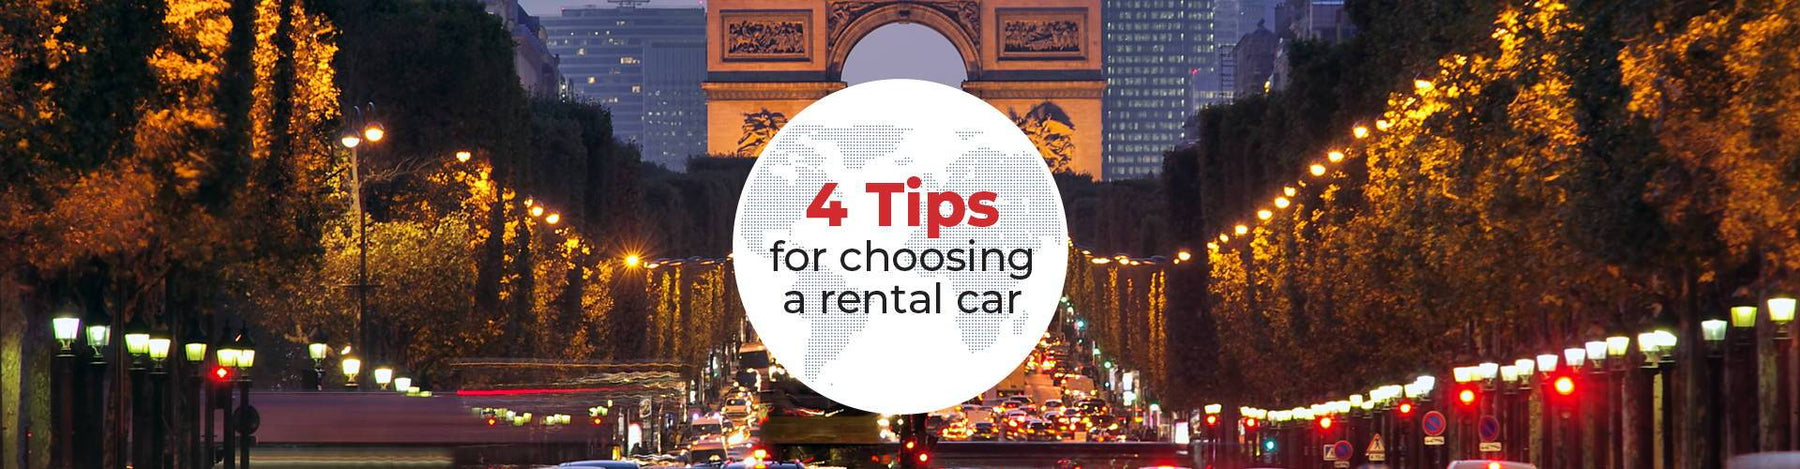 4 Tips for Choosing a Rental Car